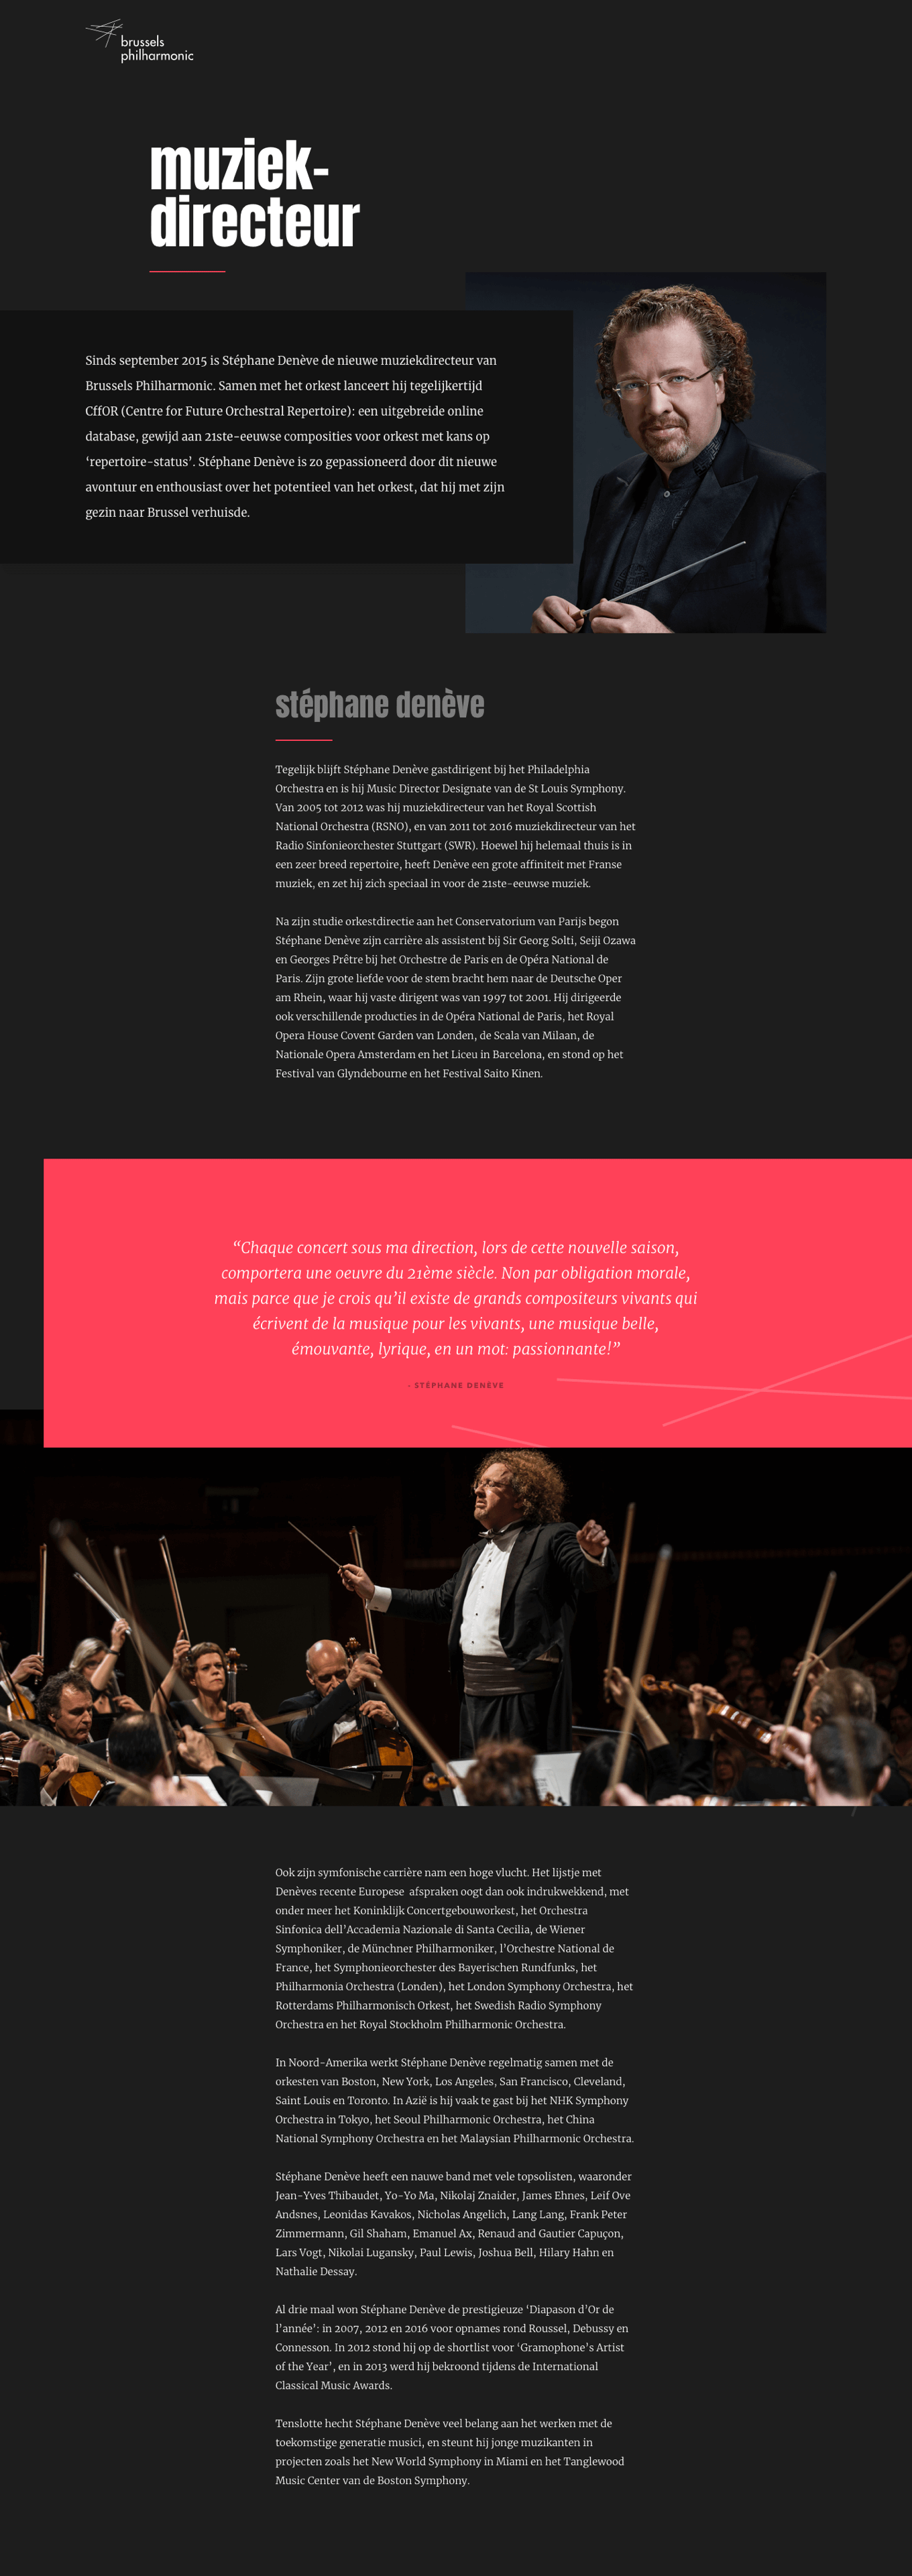 Page on website dedicated to the musical director